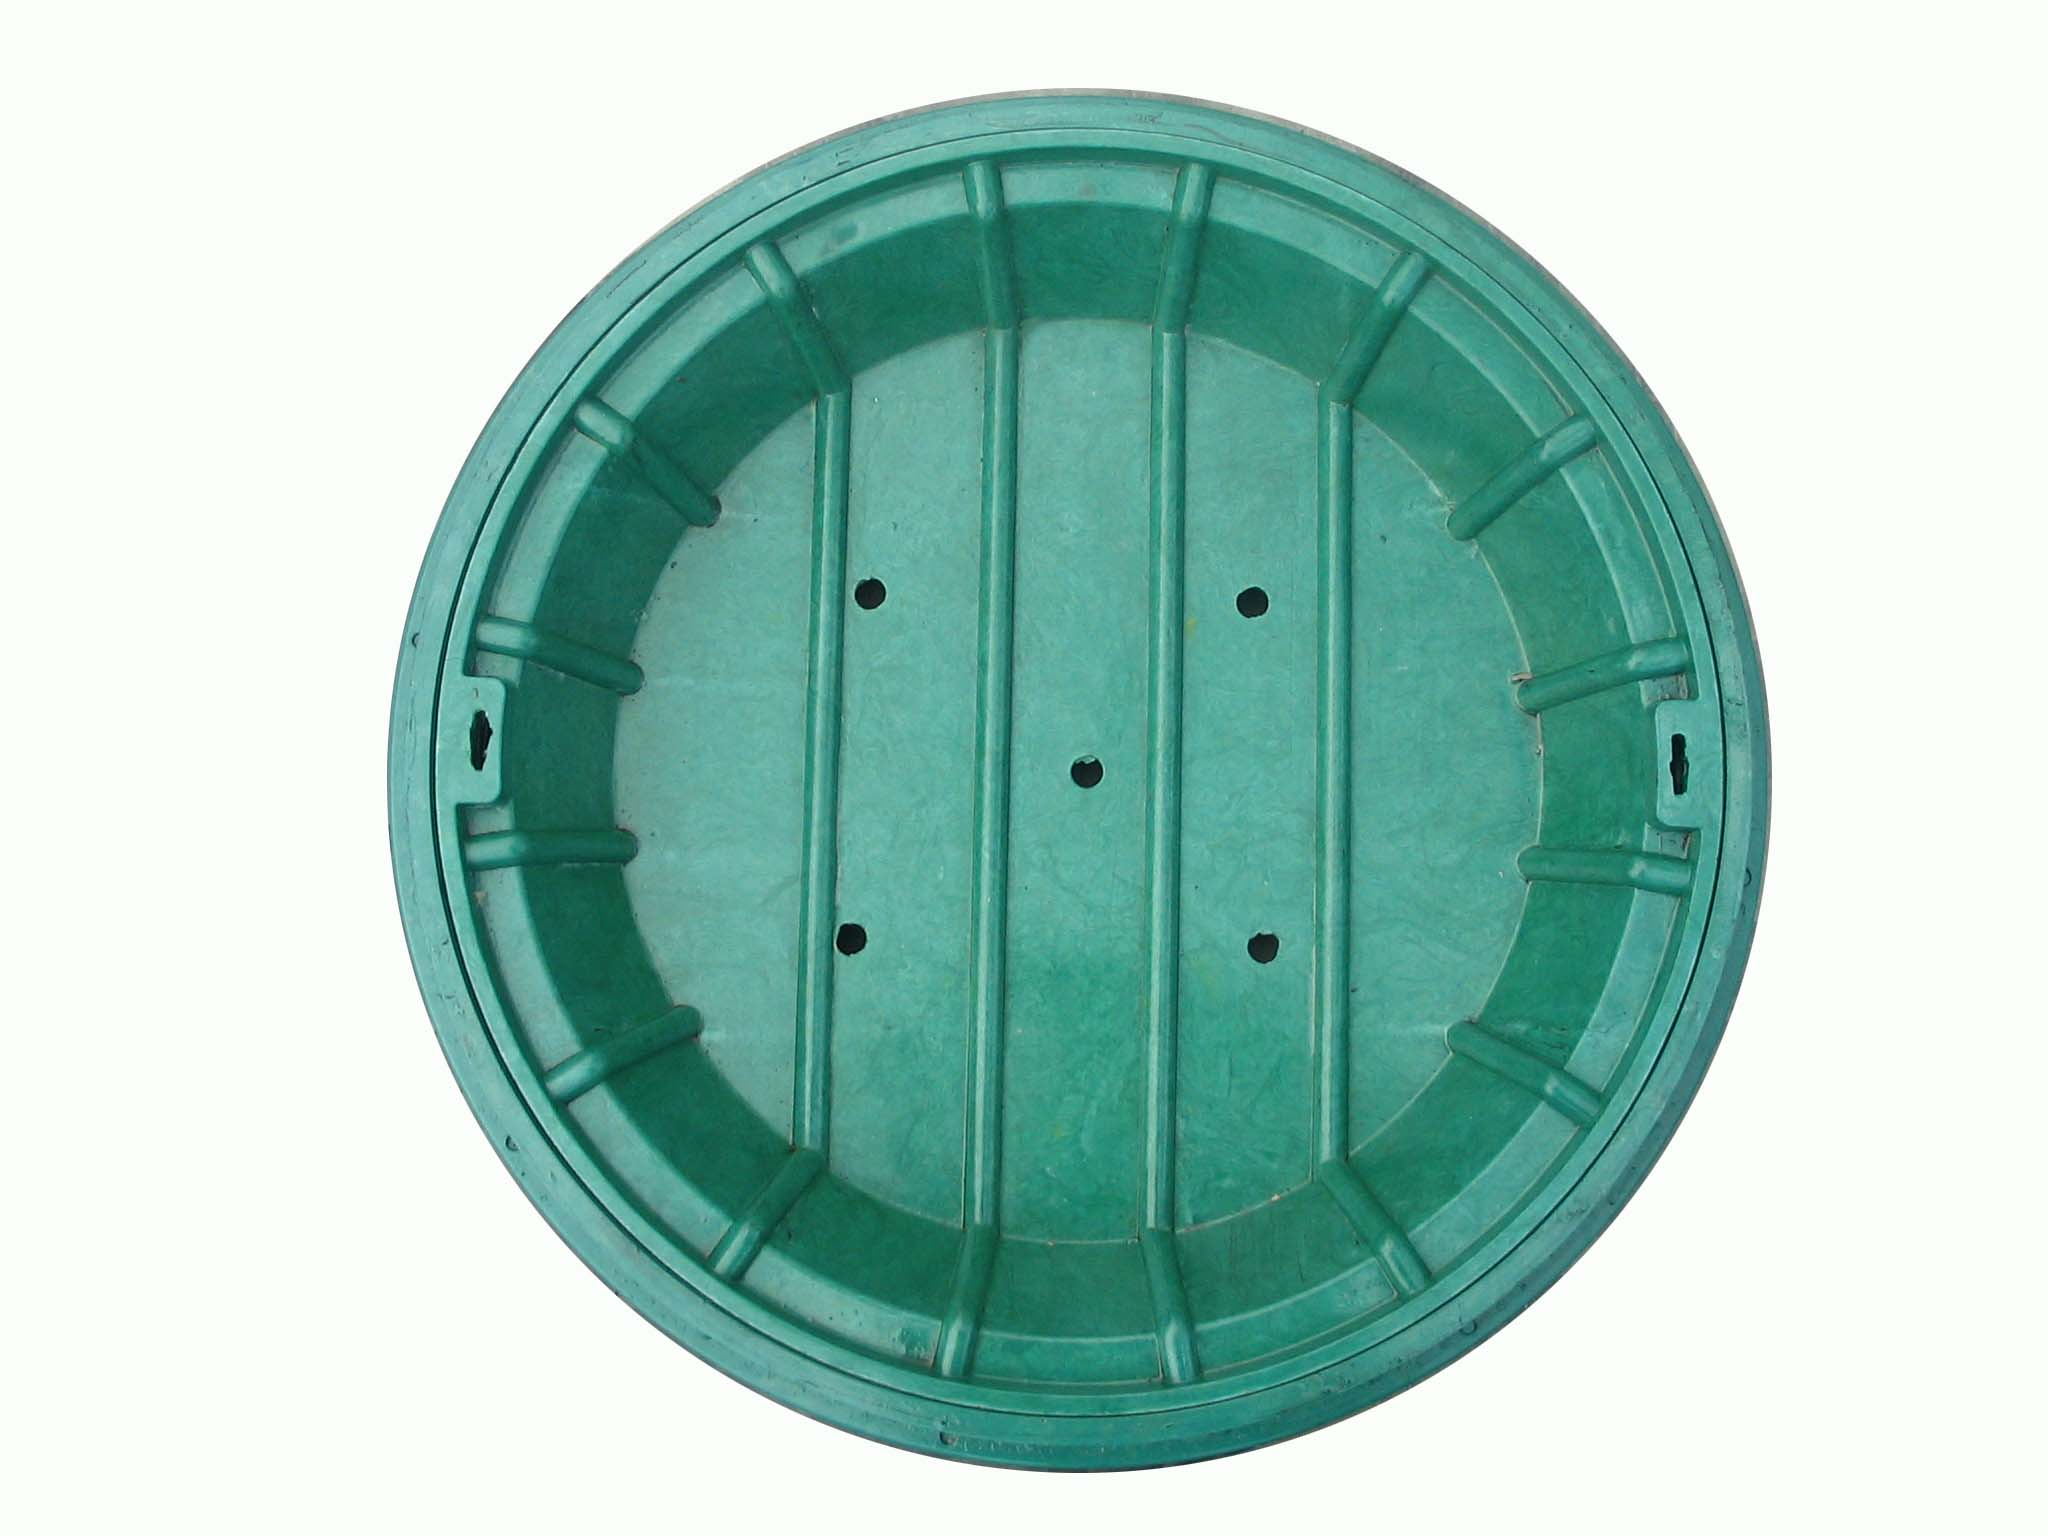 700-110mm high quality anti-theft SMC(sheet molding compound) round manhole cover